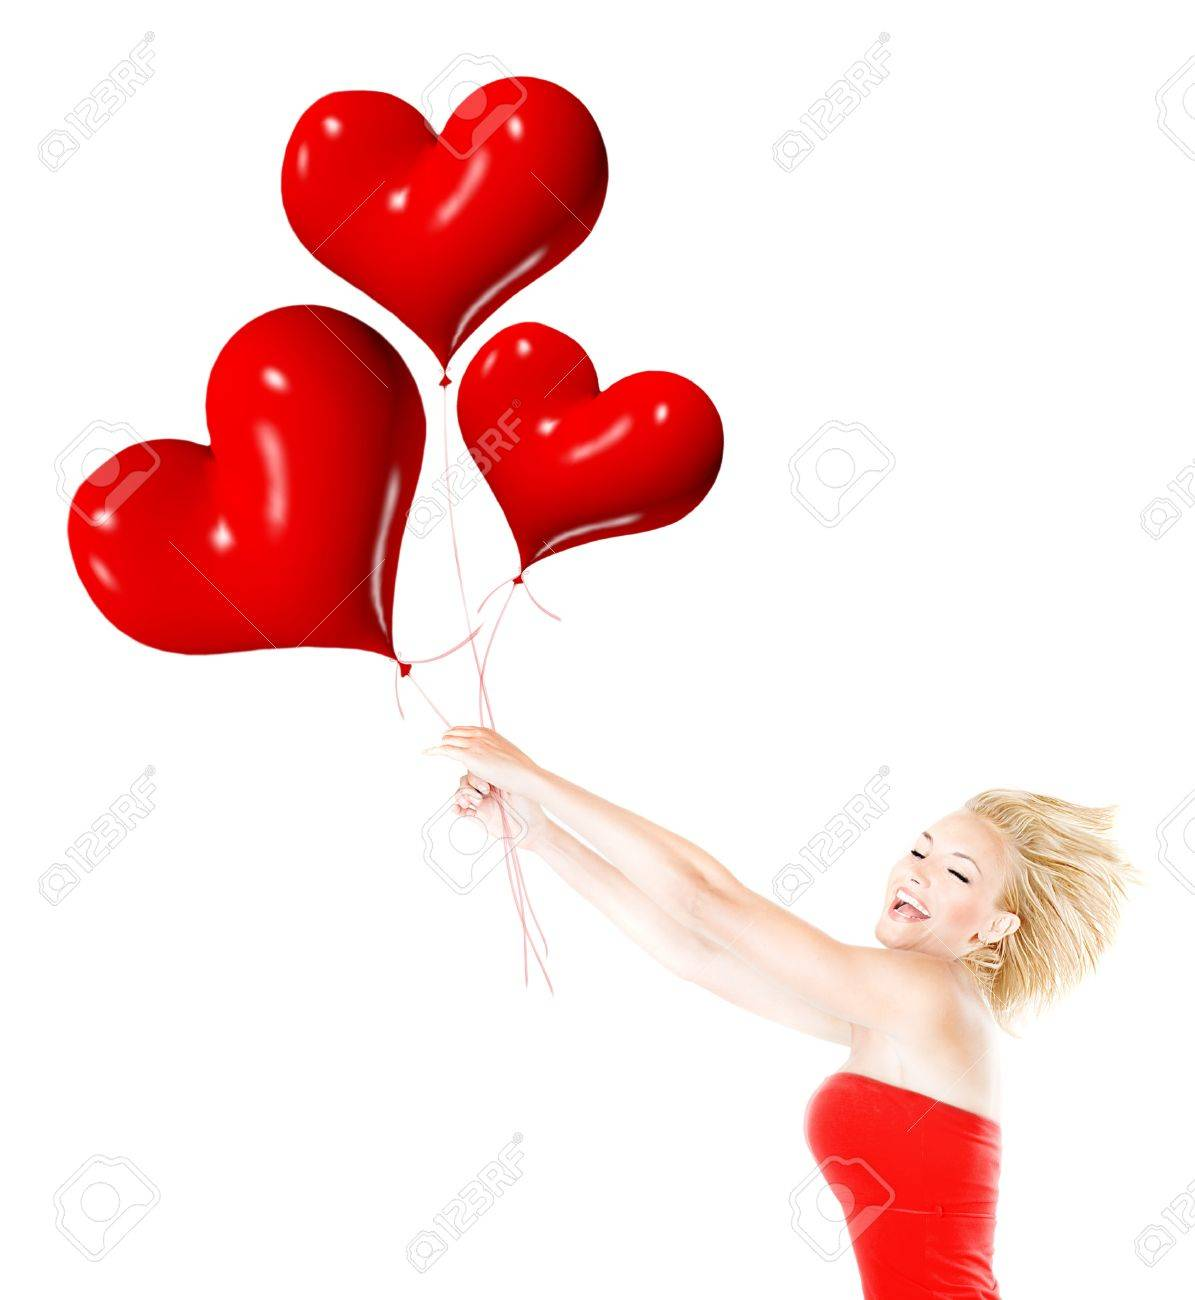 Happy girl flying, female holding red heart balloons, woman having fun and laughing, body isolated on white background, crazy in love concept Stock Photo - 12065339